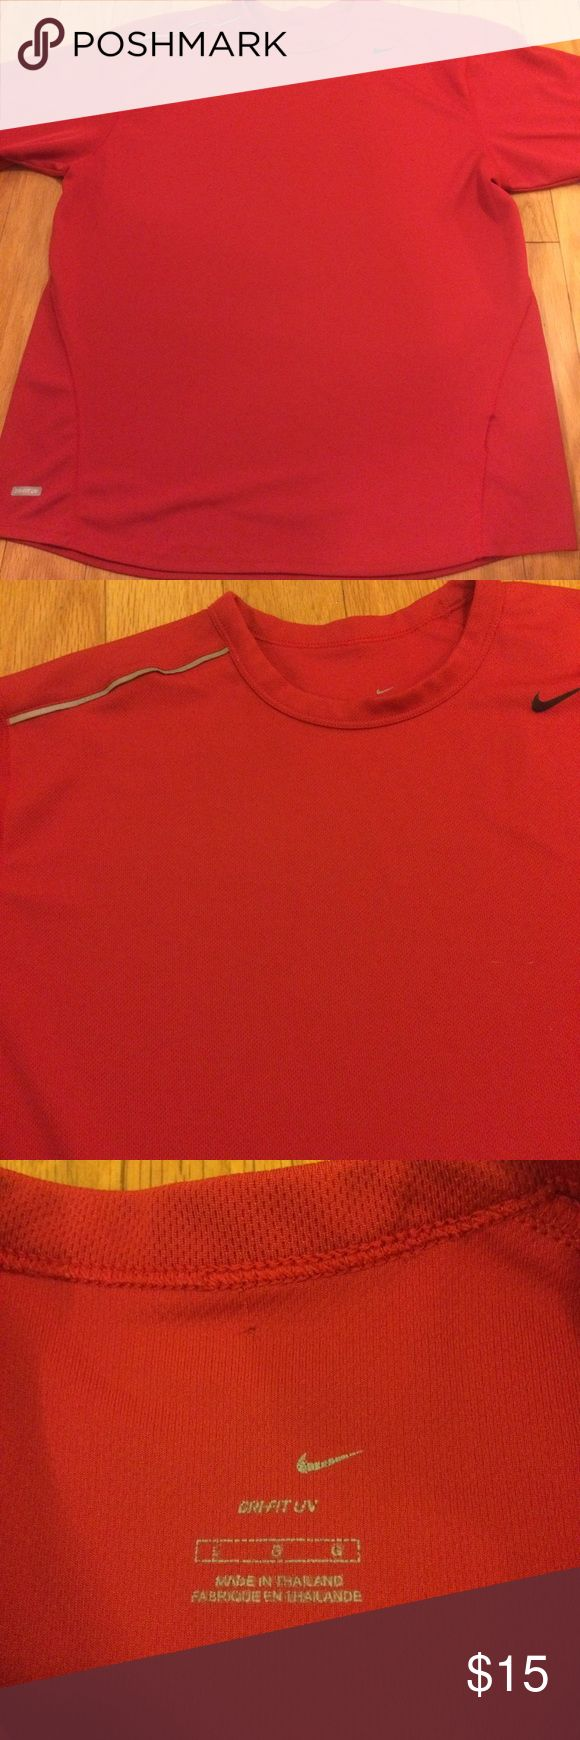 Nike drifit uv shirt Nike drifit red shirt with reflectors on both sides of the shirt. Worn twice but needed a different size. Nike Shirts Tees - Short Sleeve